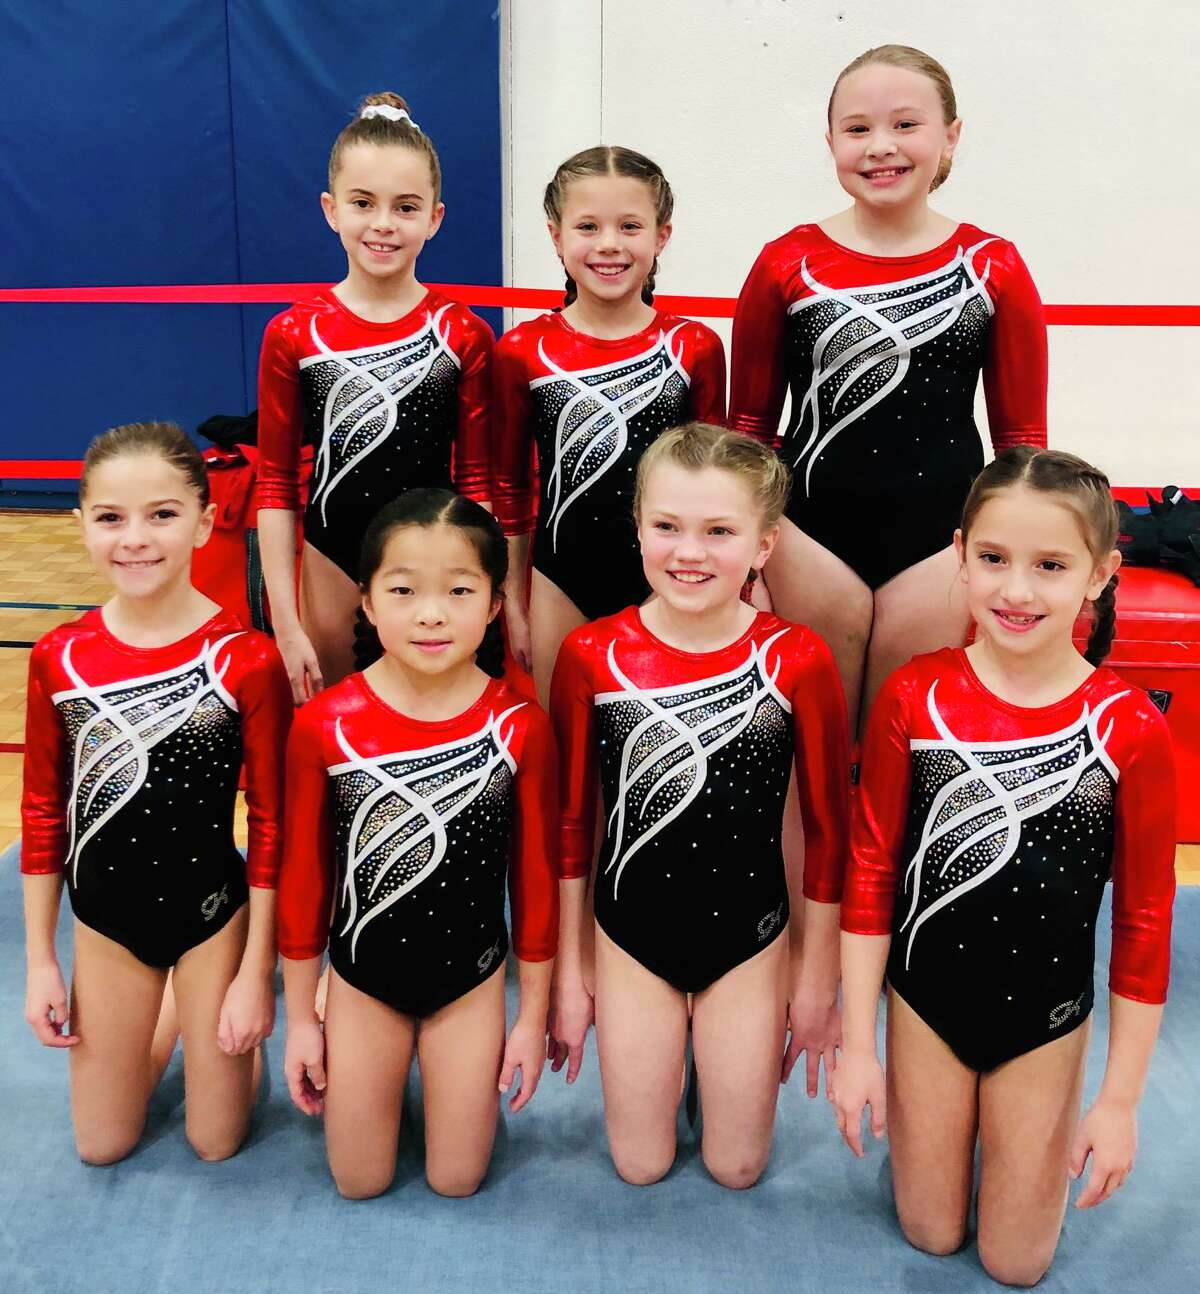 Wilton YMCA gymnasts Piper Young, Nora Walencikowski and Kensey Diglio (back row, left to right) and Allison Massaua, Brianna Shiue, Jane Carroll, and Lily Blessing (front row, left to right) competed for the first time at the Snowflake Invitational.